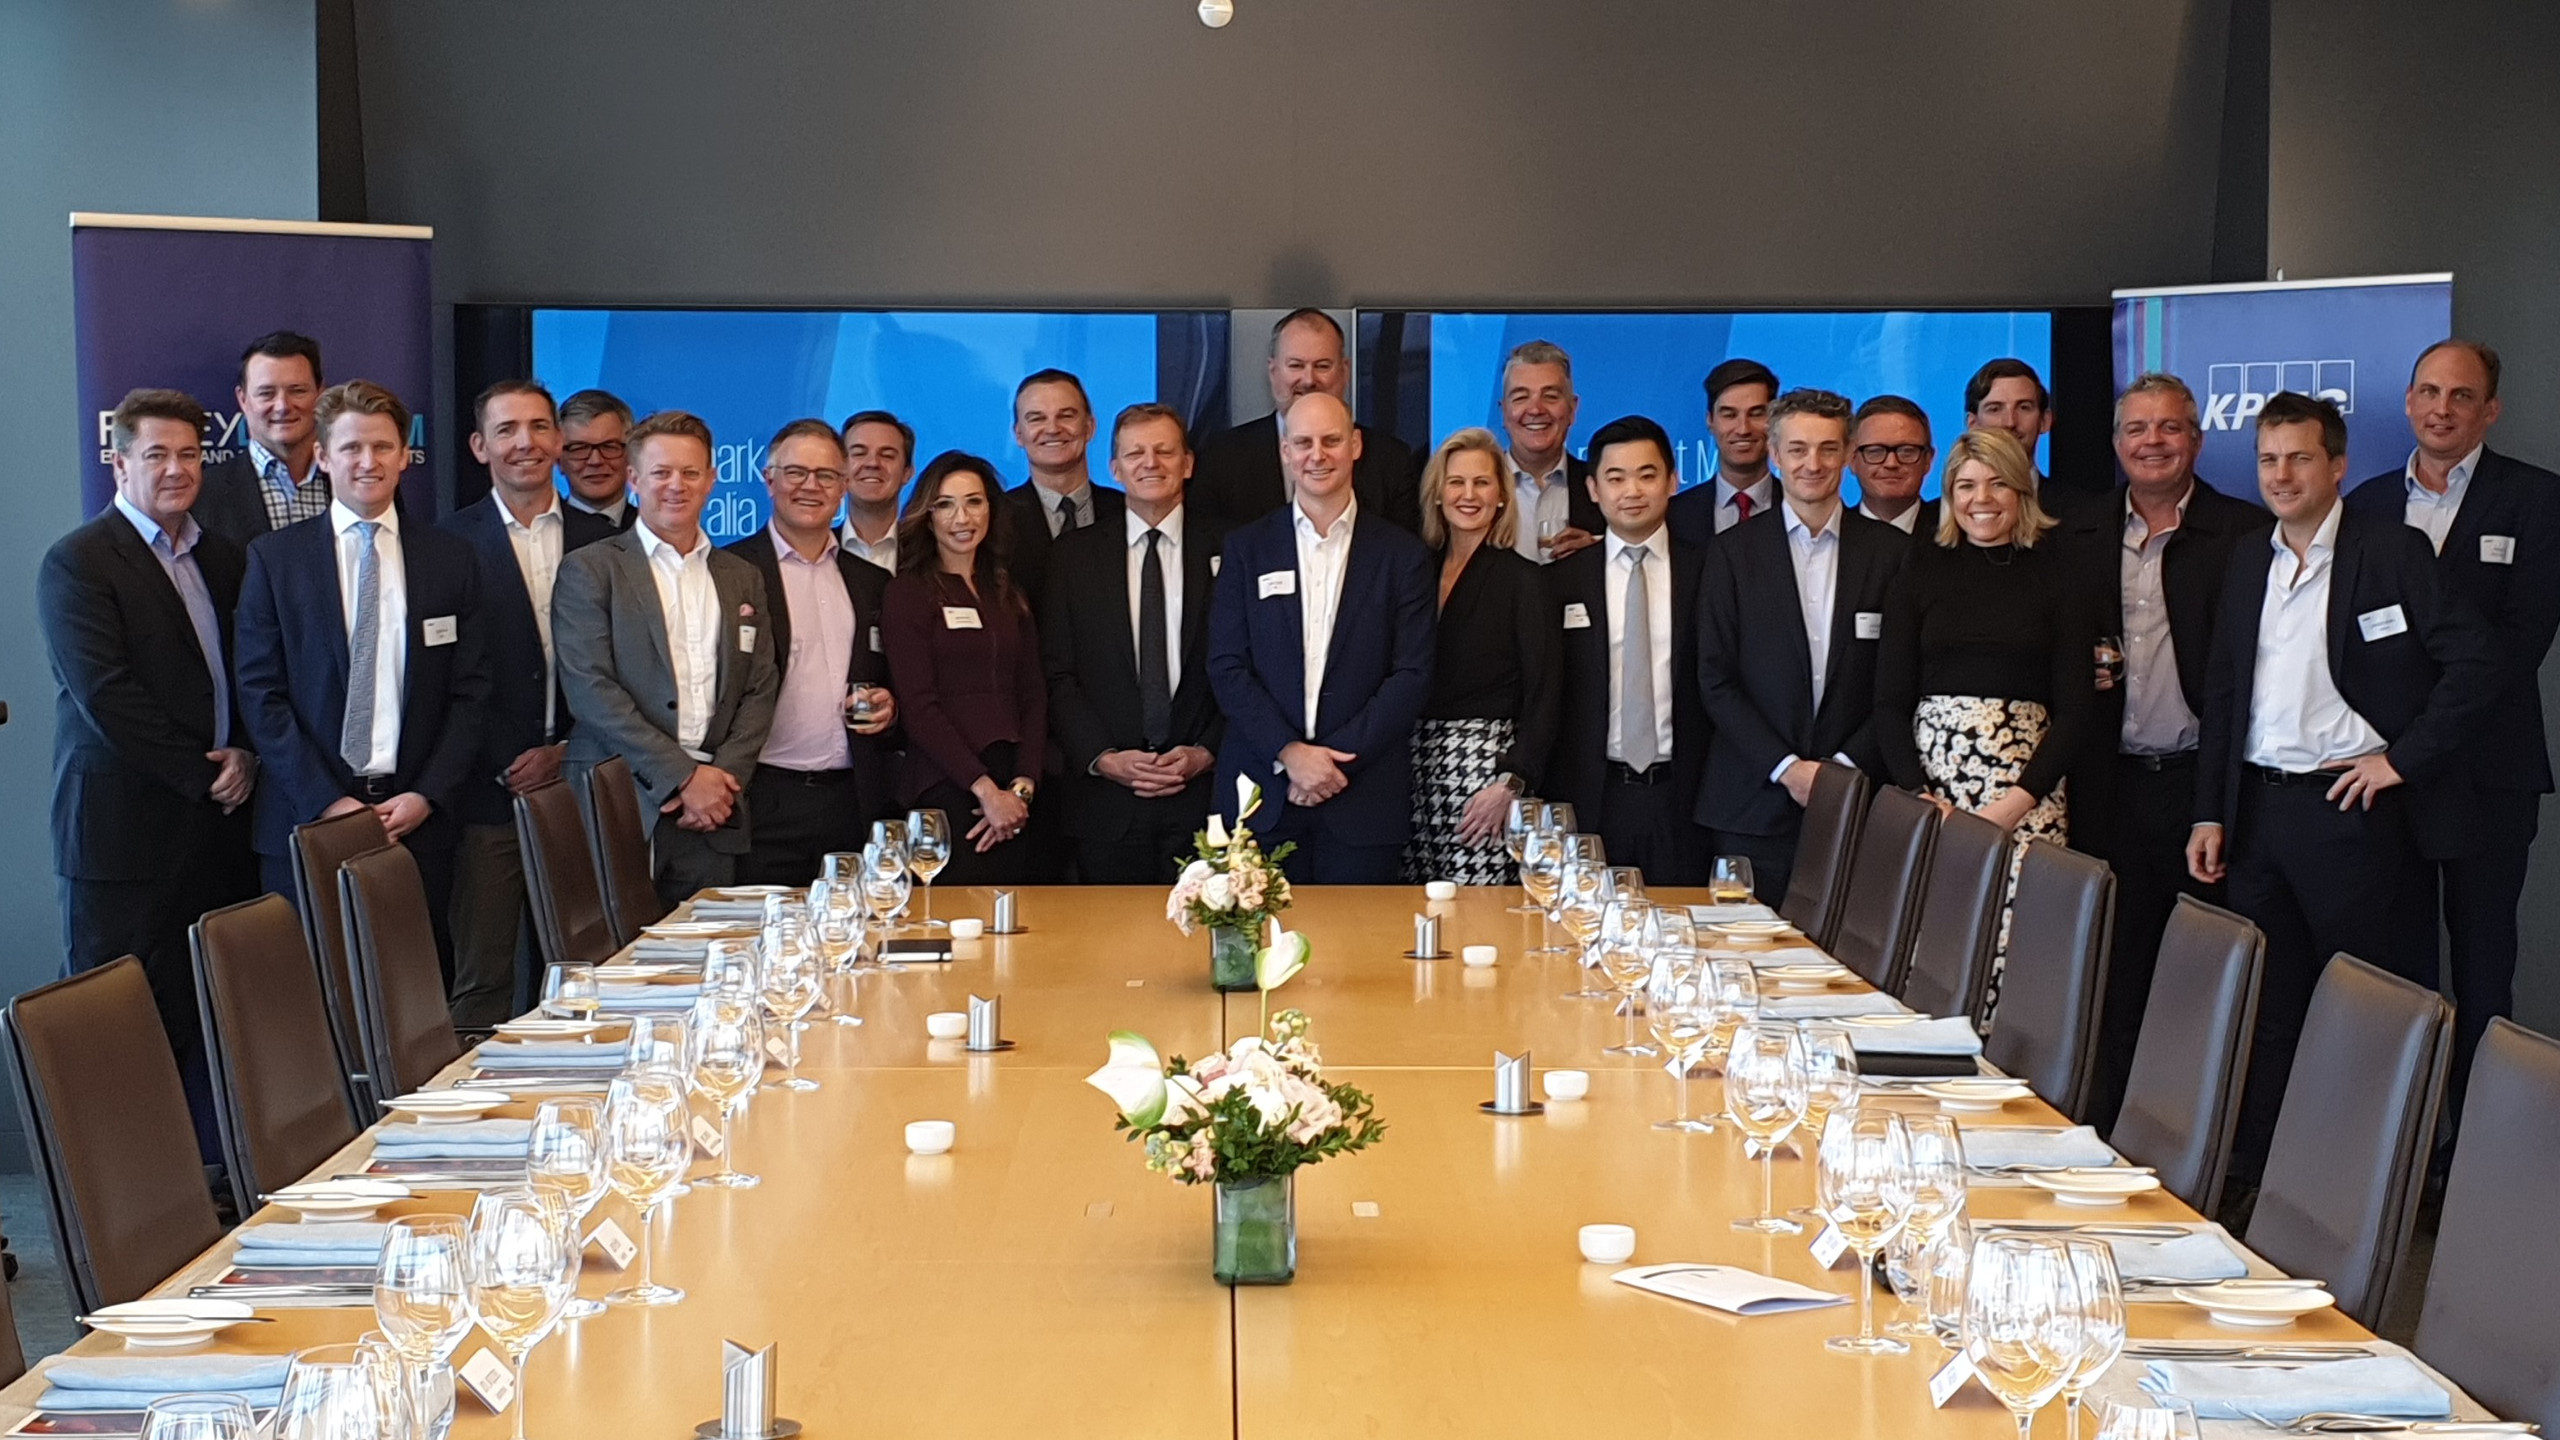 190724 KPMG Lunch group